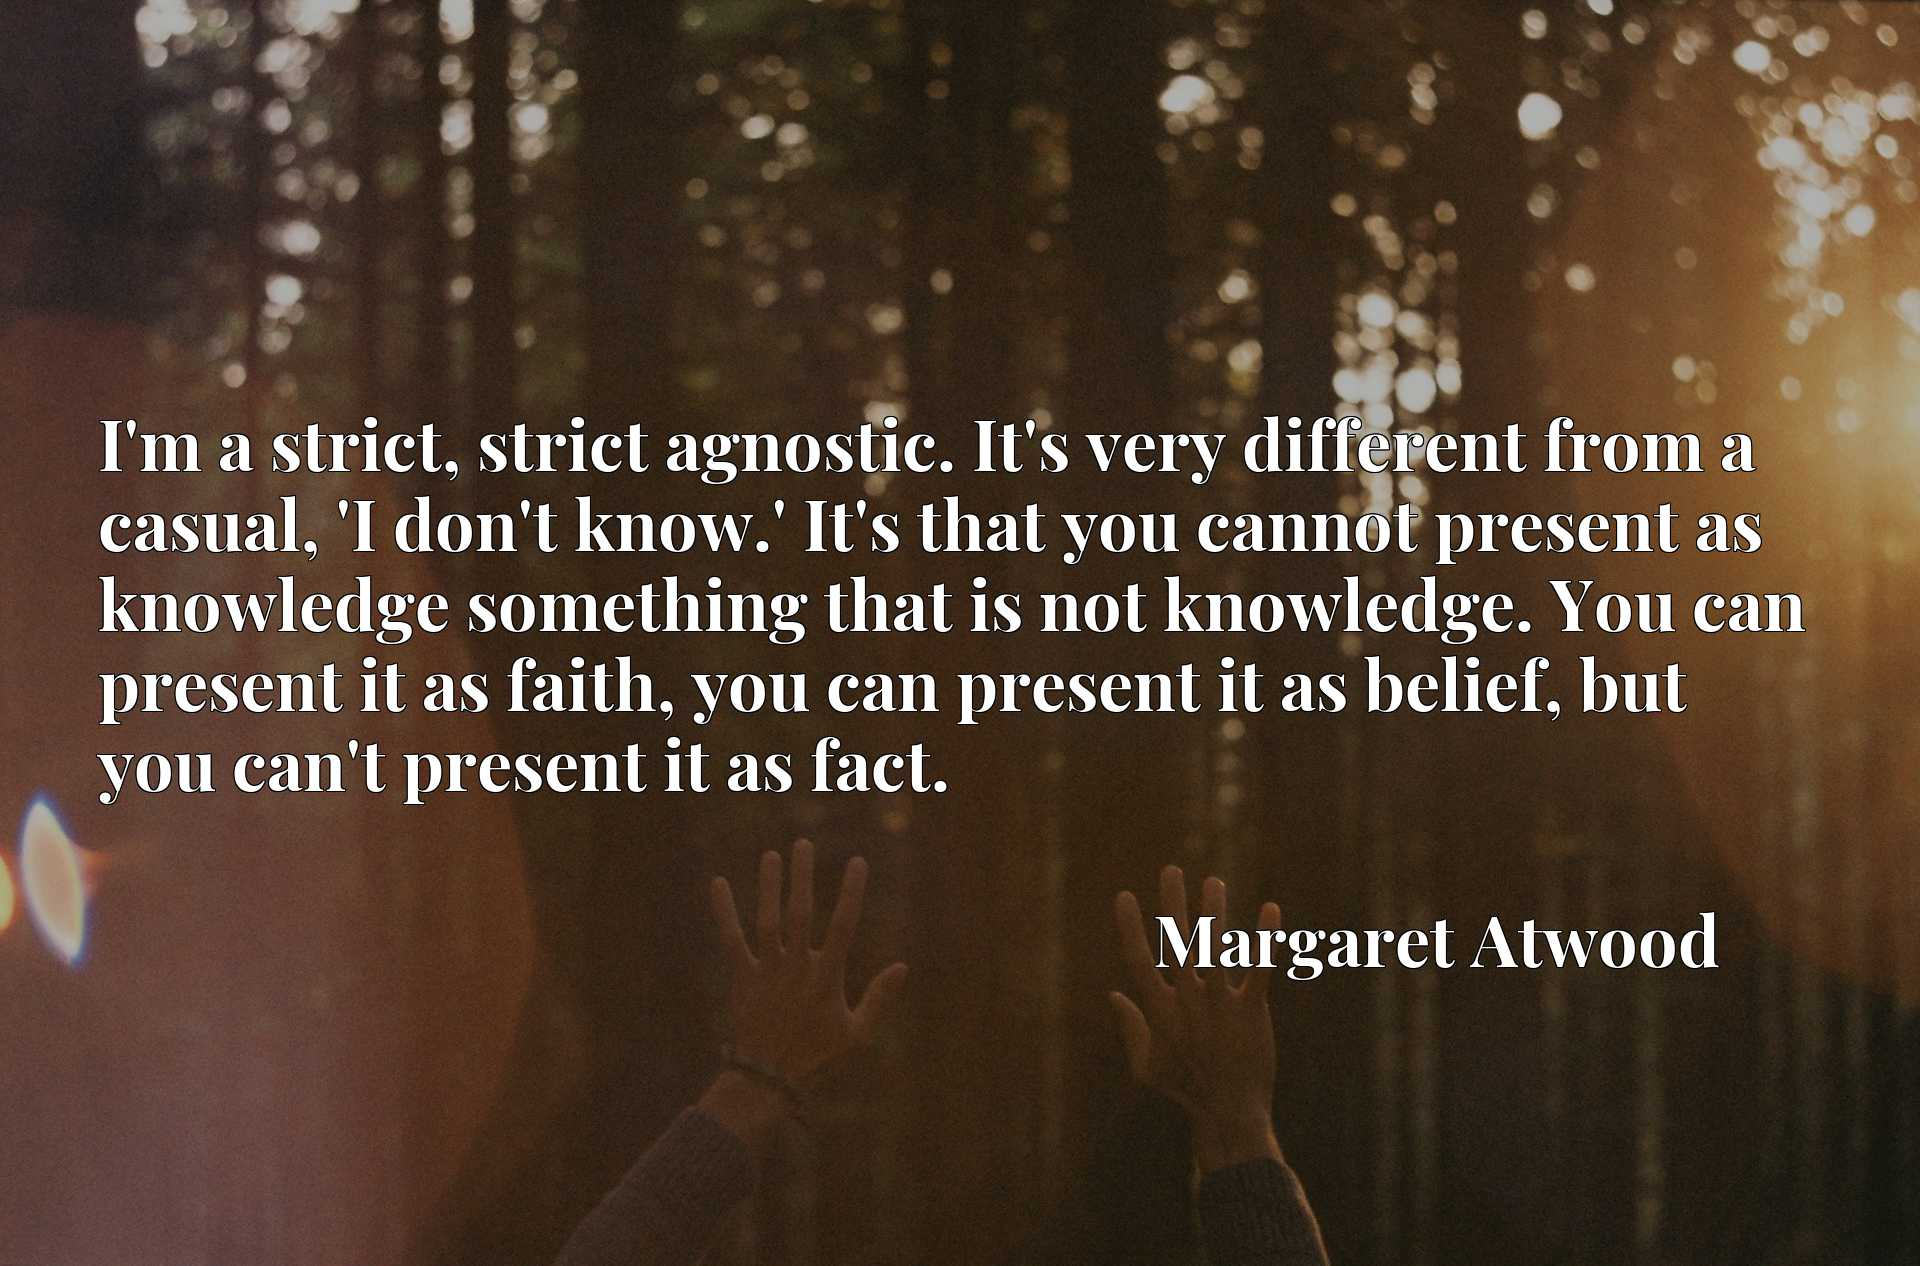 I'm a strict, strict agnostic. It's very different from a casual, 'I don't know.' It's that you cannot present as knowledge something that is not knowledge. You can present it as faith, you can present it as belief, but you can't present it as fact.